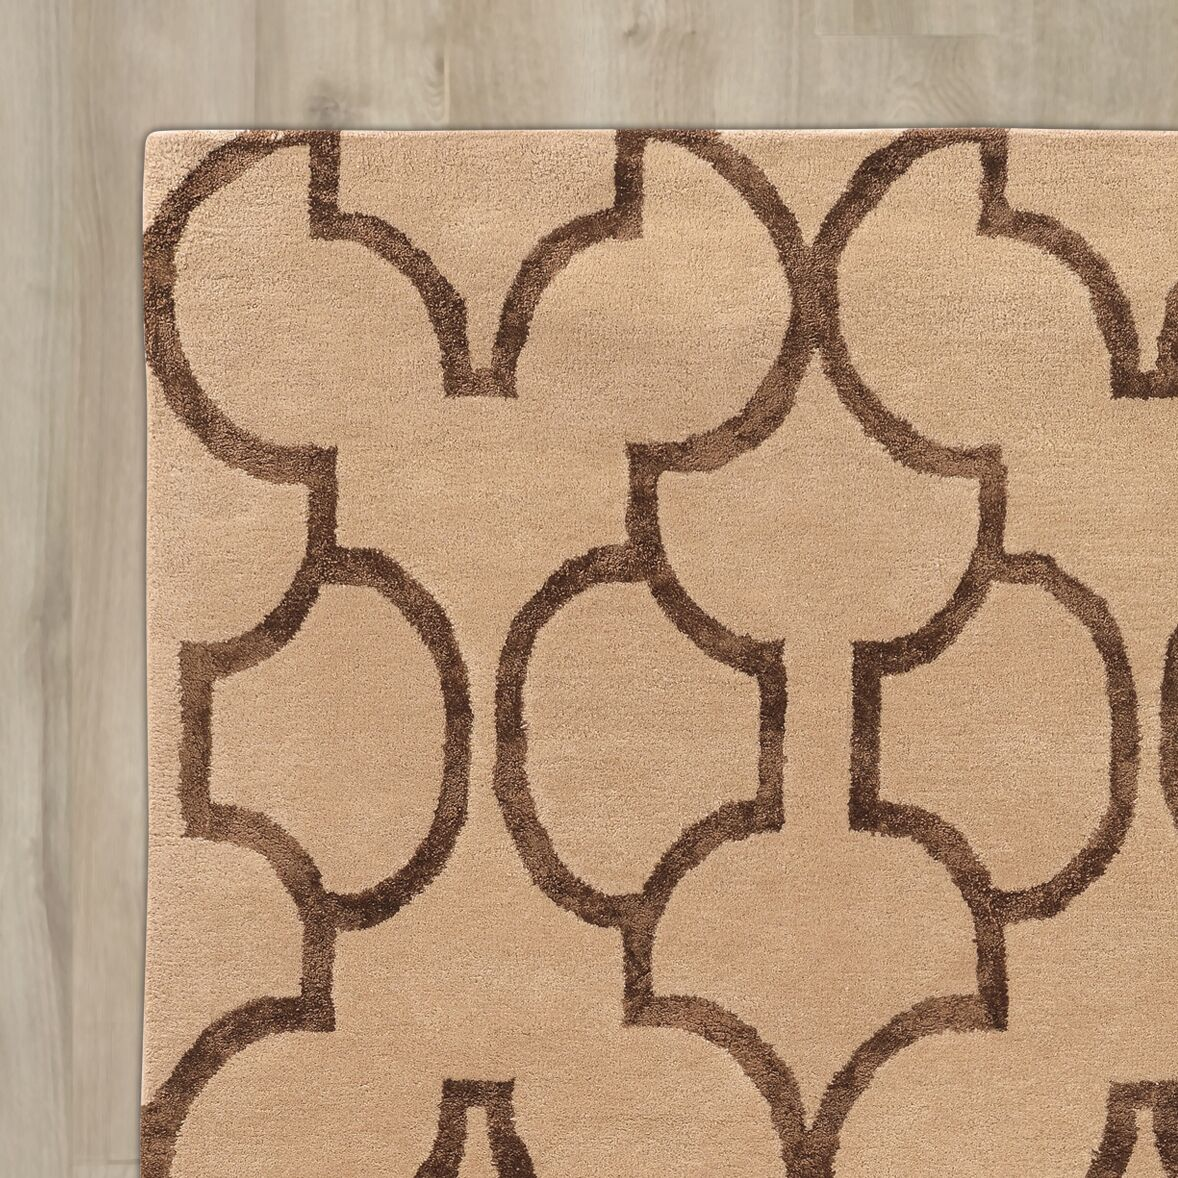 Leone Hand-Tufted Beige/Brown Area Rug Rug Size: Rectangle 5' x 8'